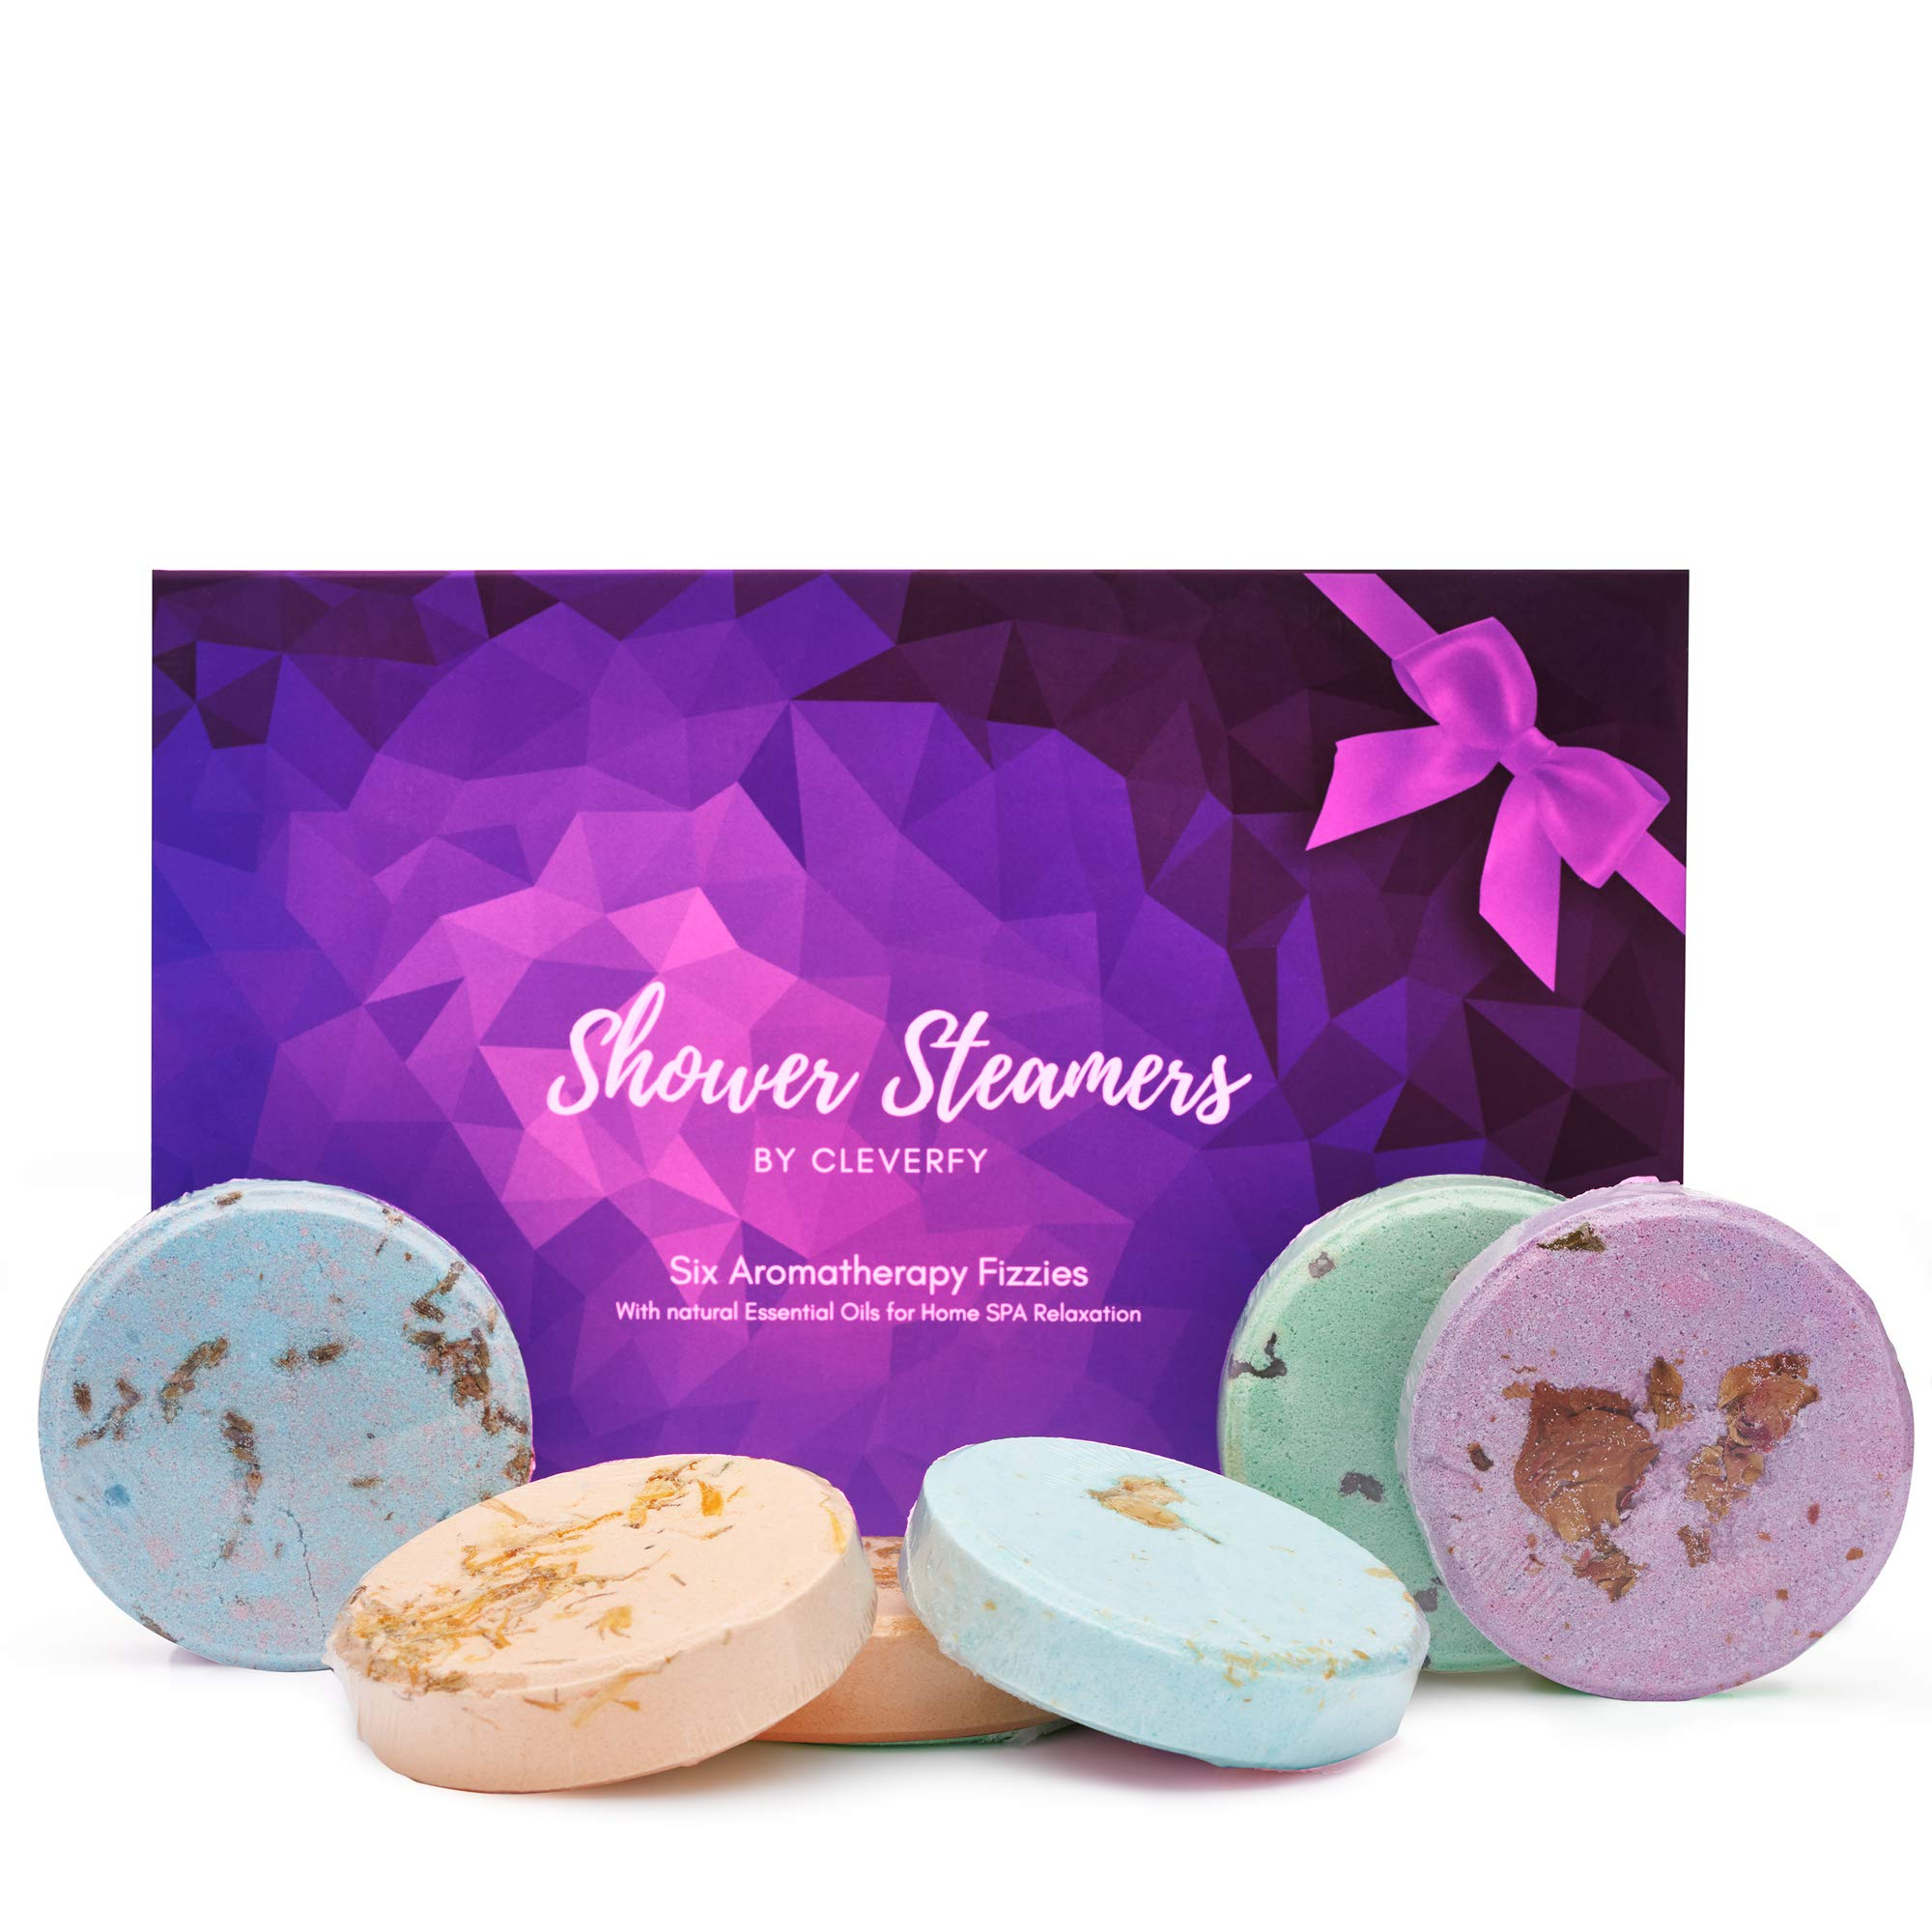 Cleverfy Shower Bombs Aromatherapy - Gift Set of [6] Shower Steamers - With Essential Oils For Home Spa. Shower Melts a.k.a. Vaporizing Shower Tablets are Perfect for Sinus Relief by CLEVERFY